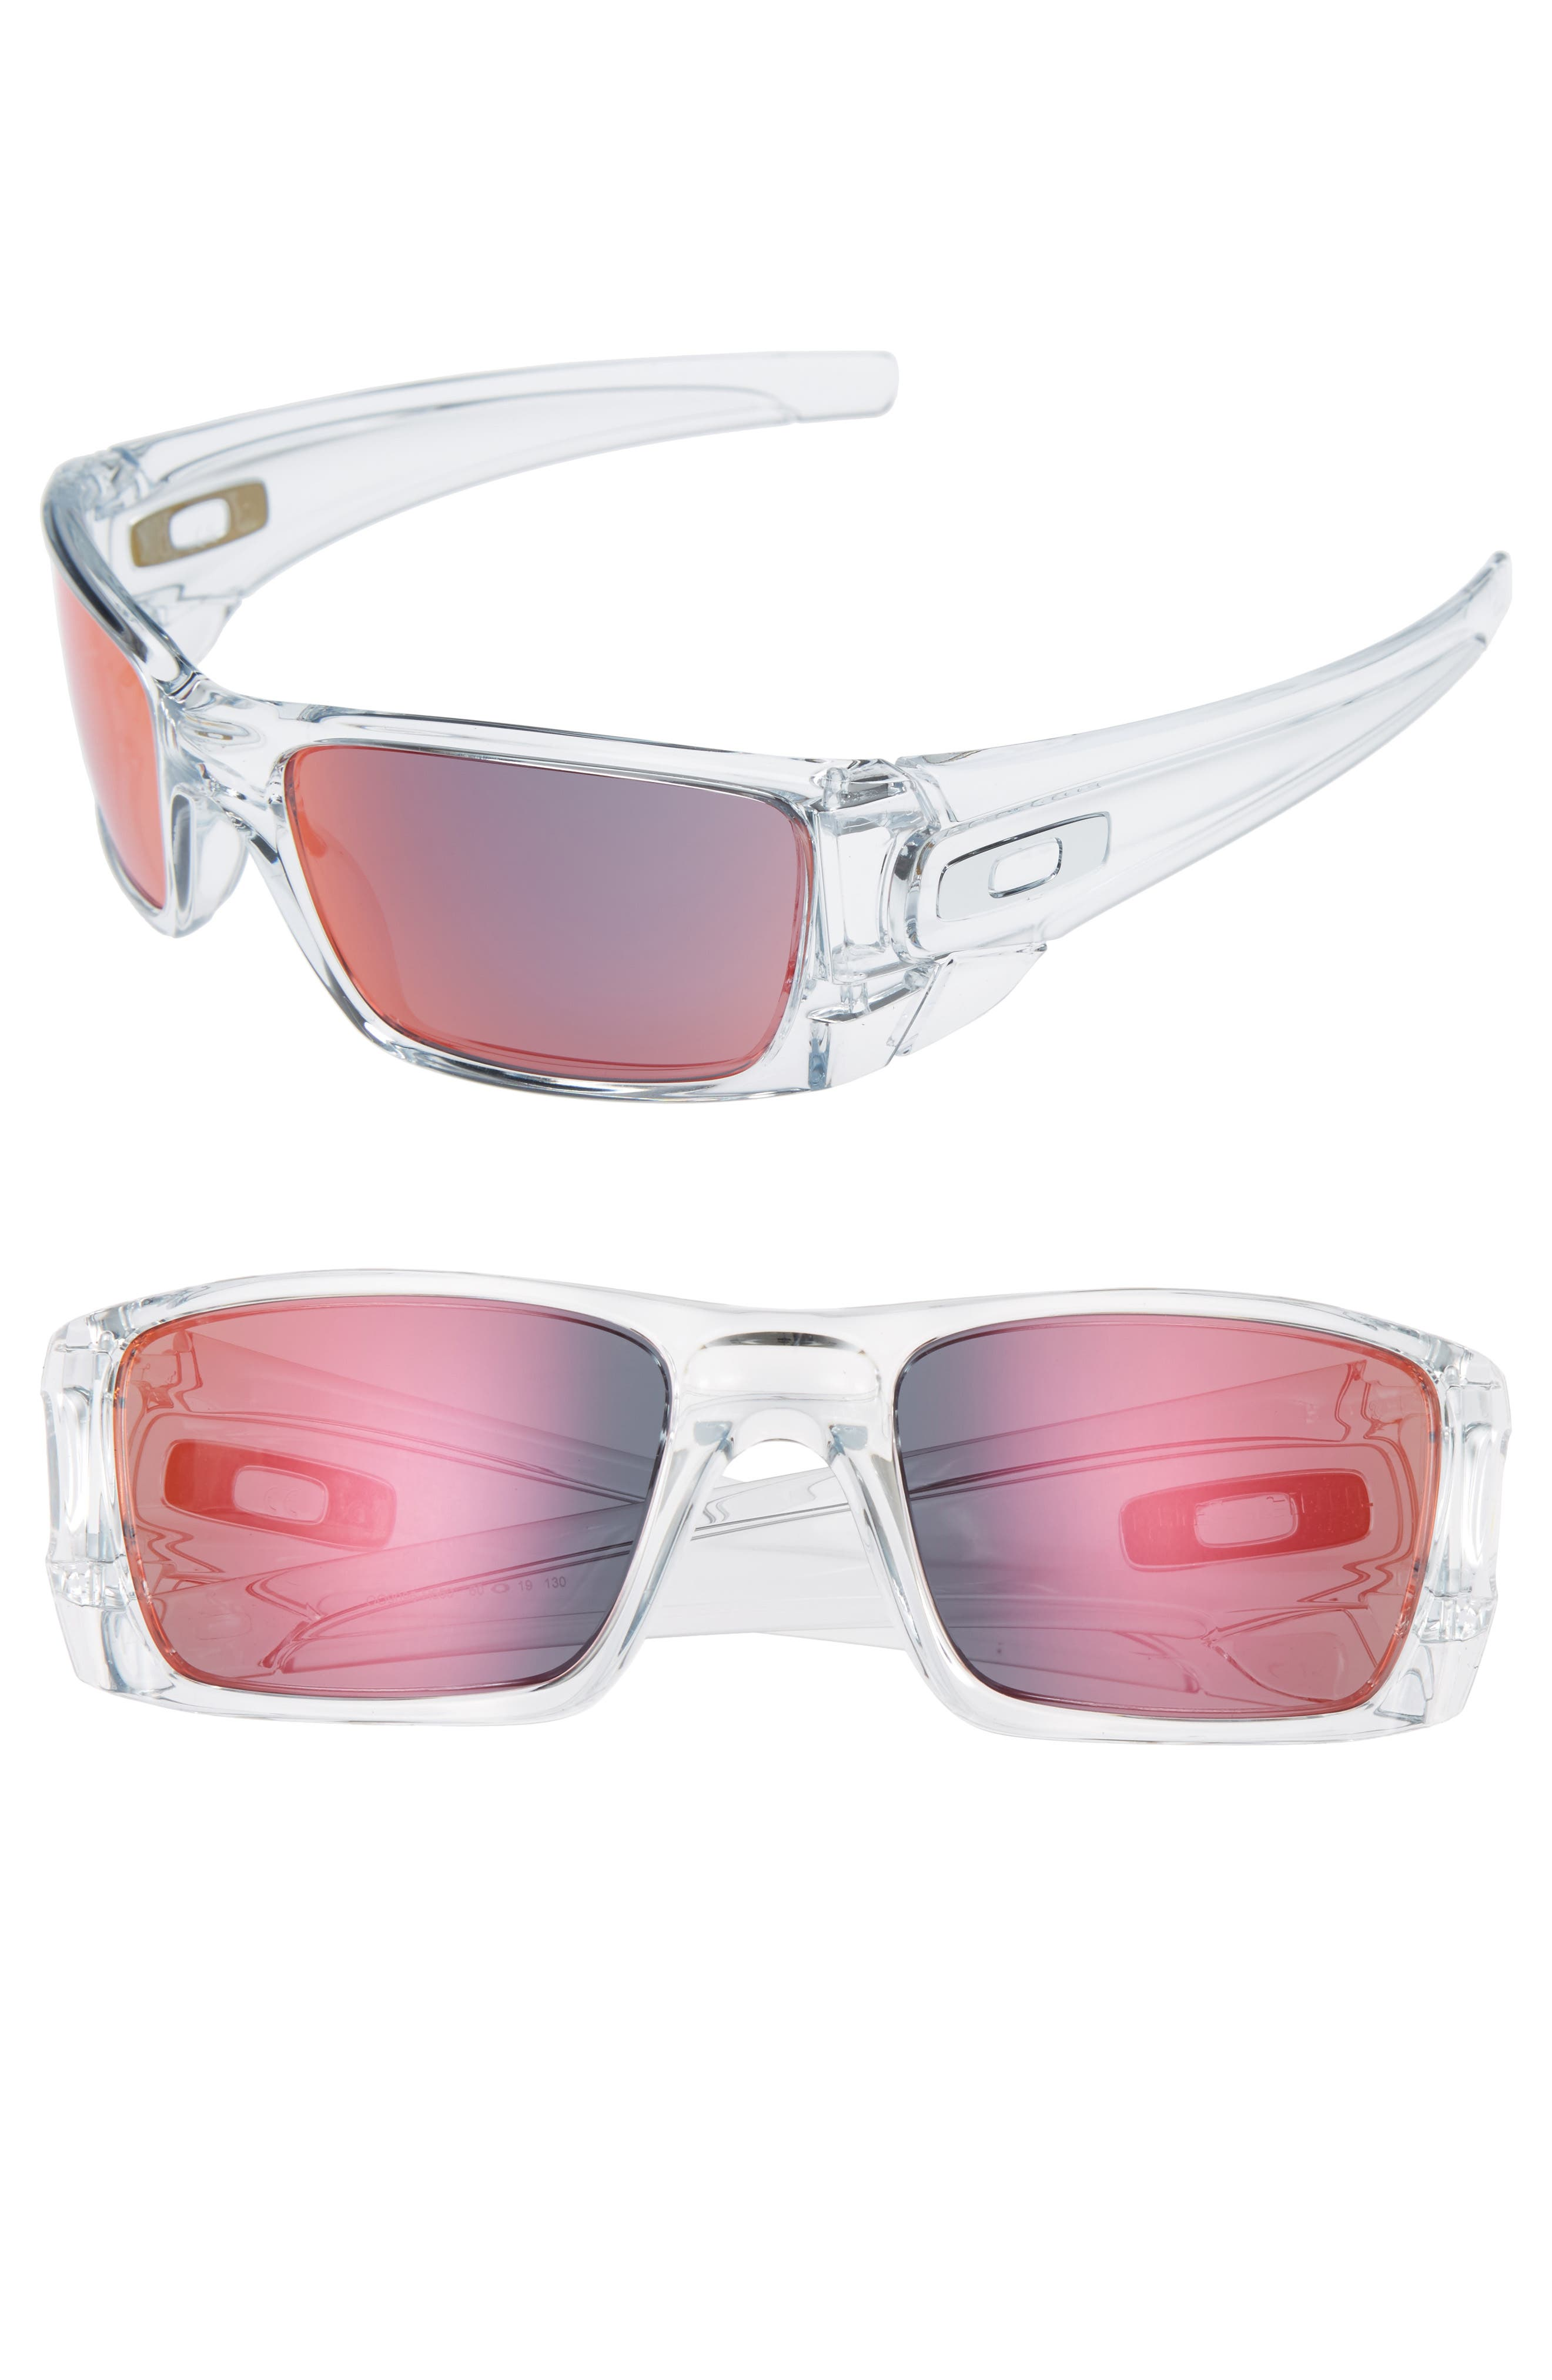 Fuel Cell 60mm Sunglasses,                         Main,                         color, 101